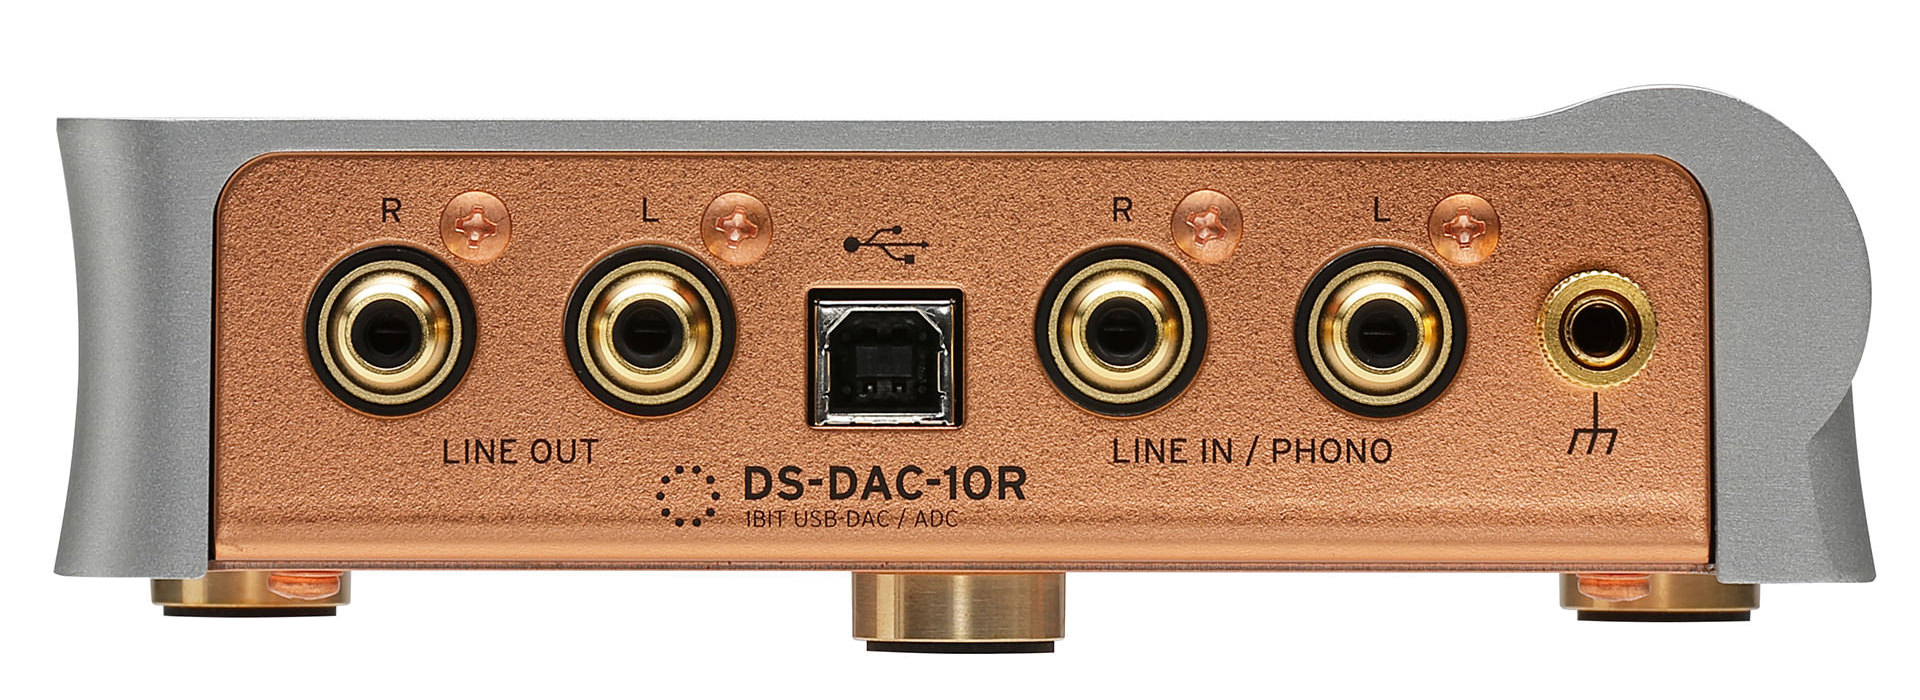 ds-dac-10r4